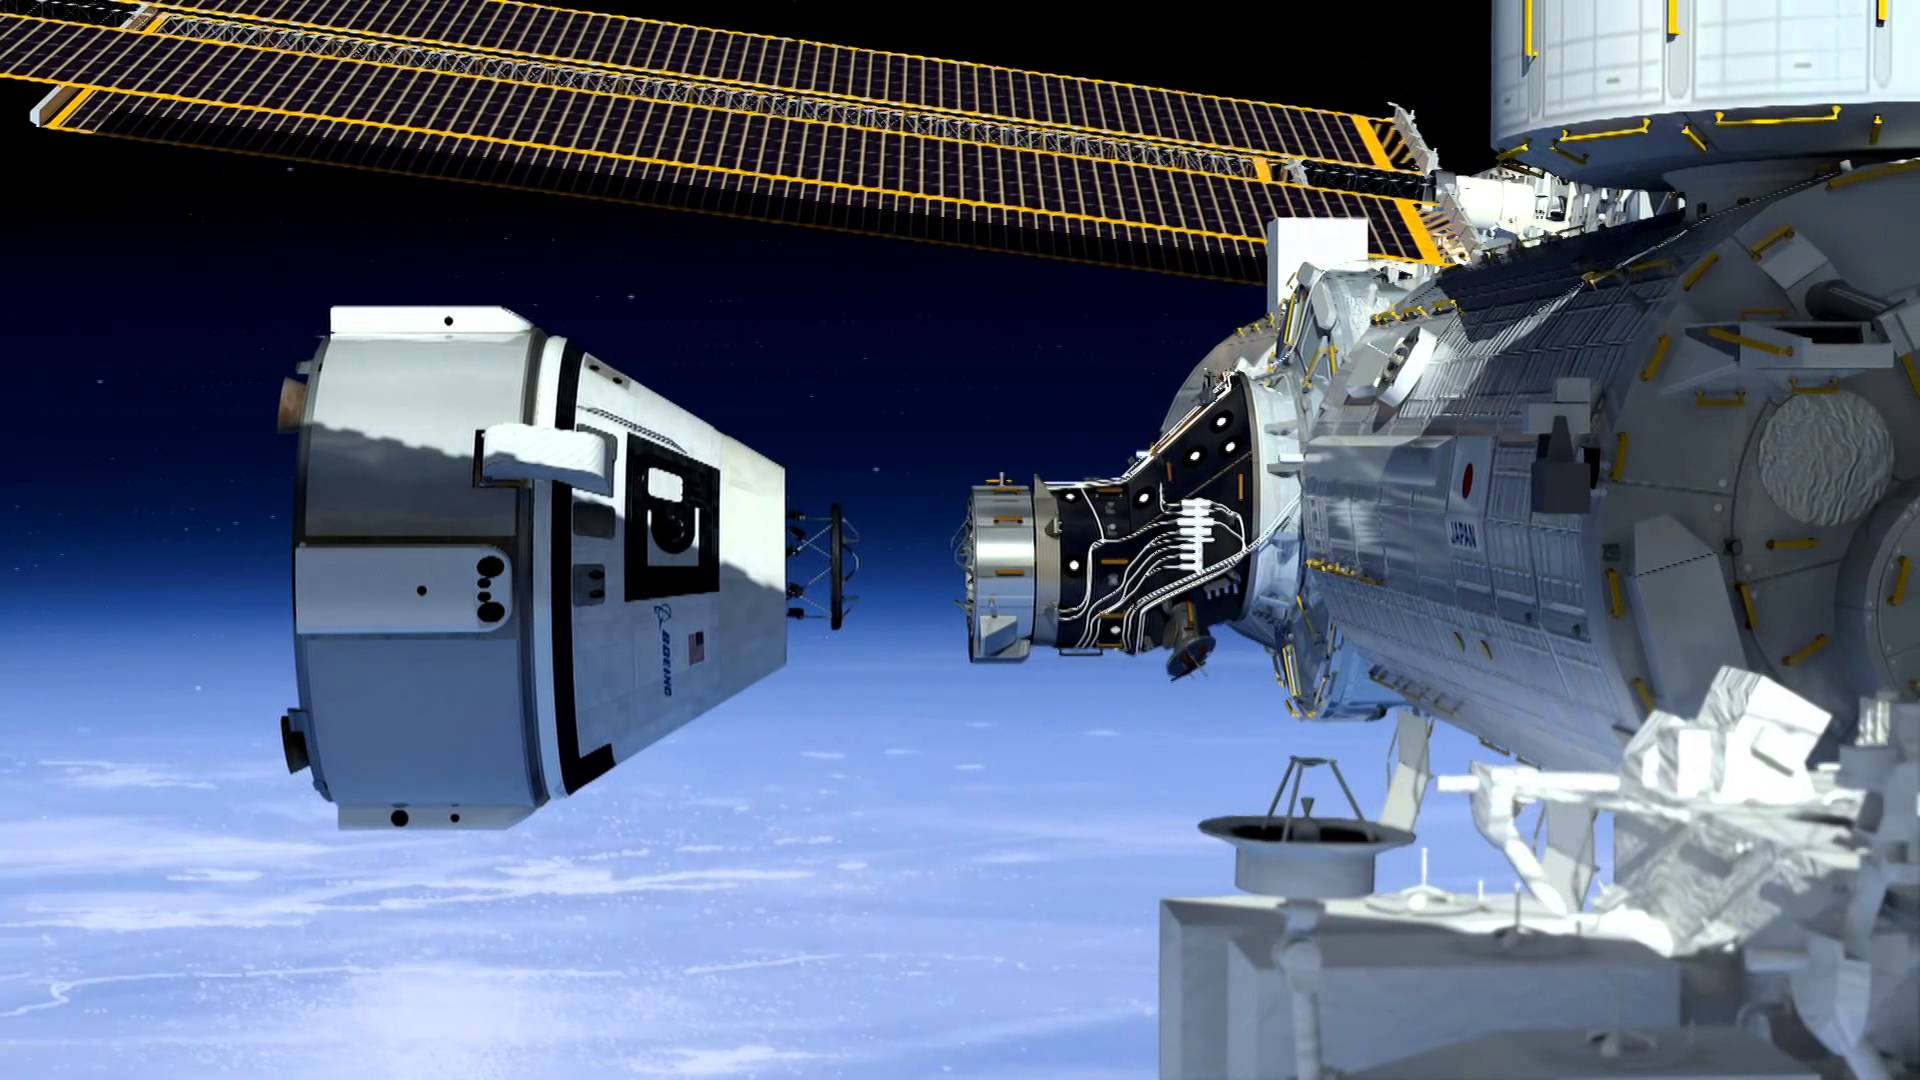 Iss Hd Wallpaper Commercial Crew Docking Adapter To Be Installed On Iss Via